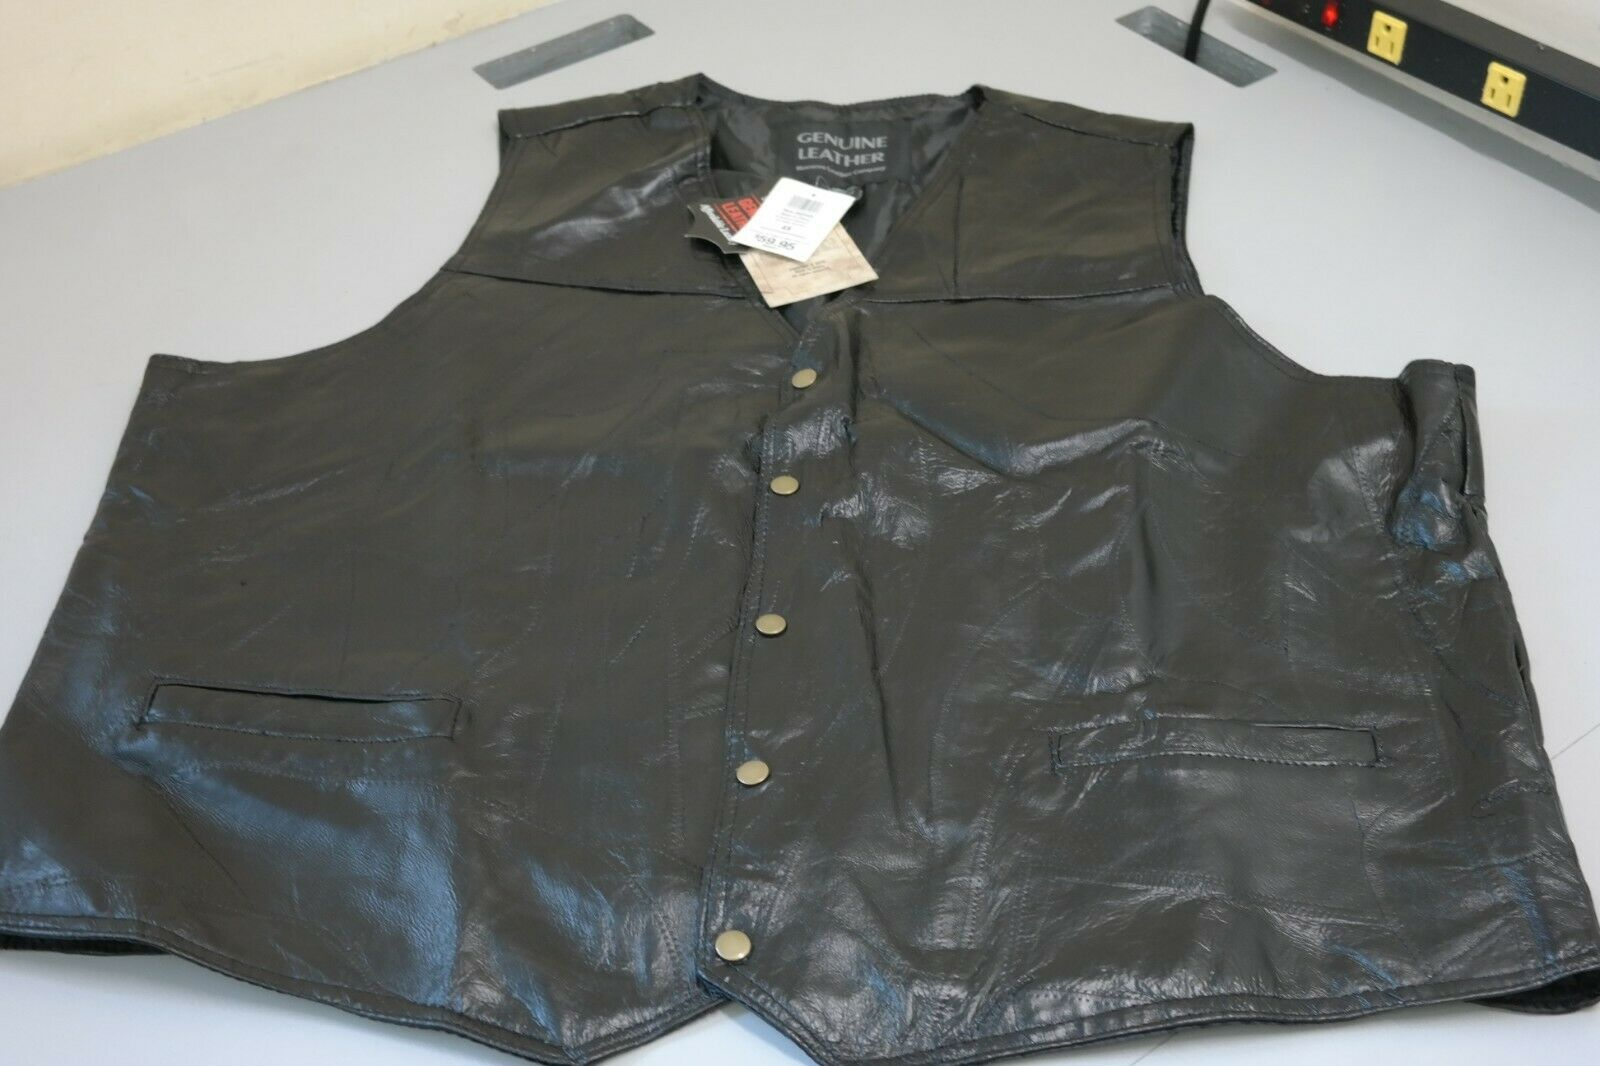 Giovanni Navarre Stone Leather Vest - Large